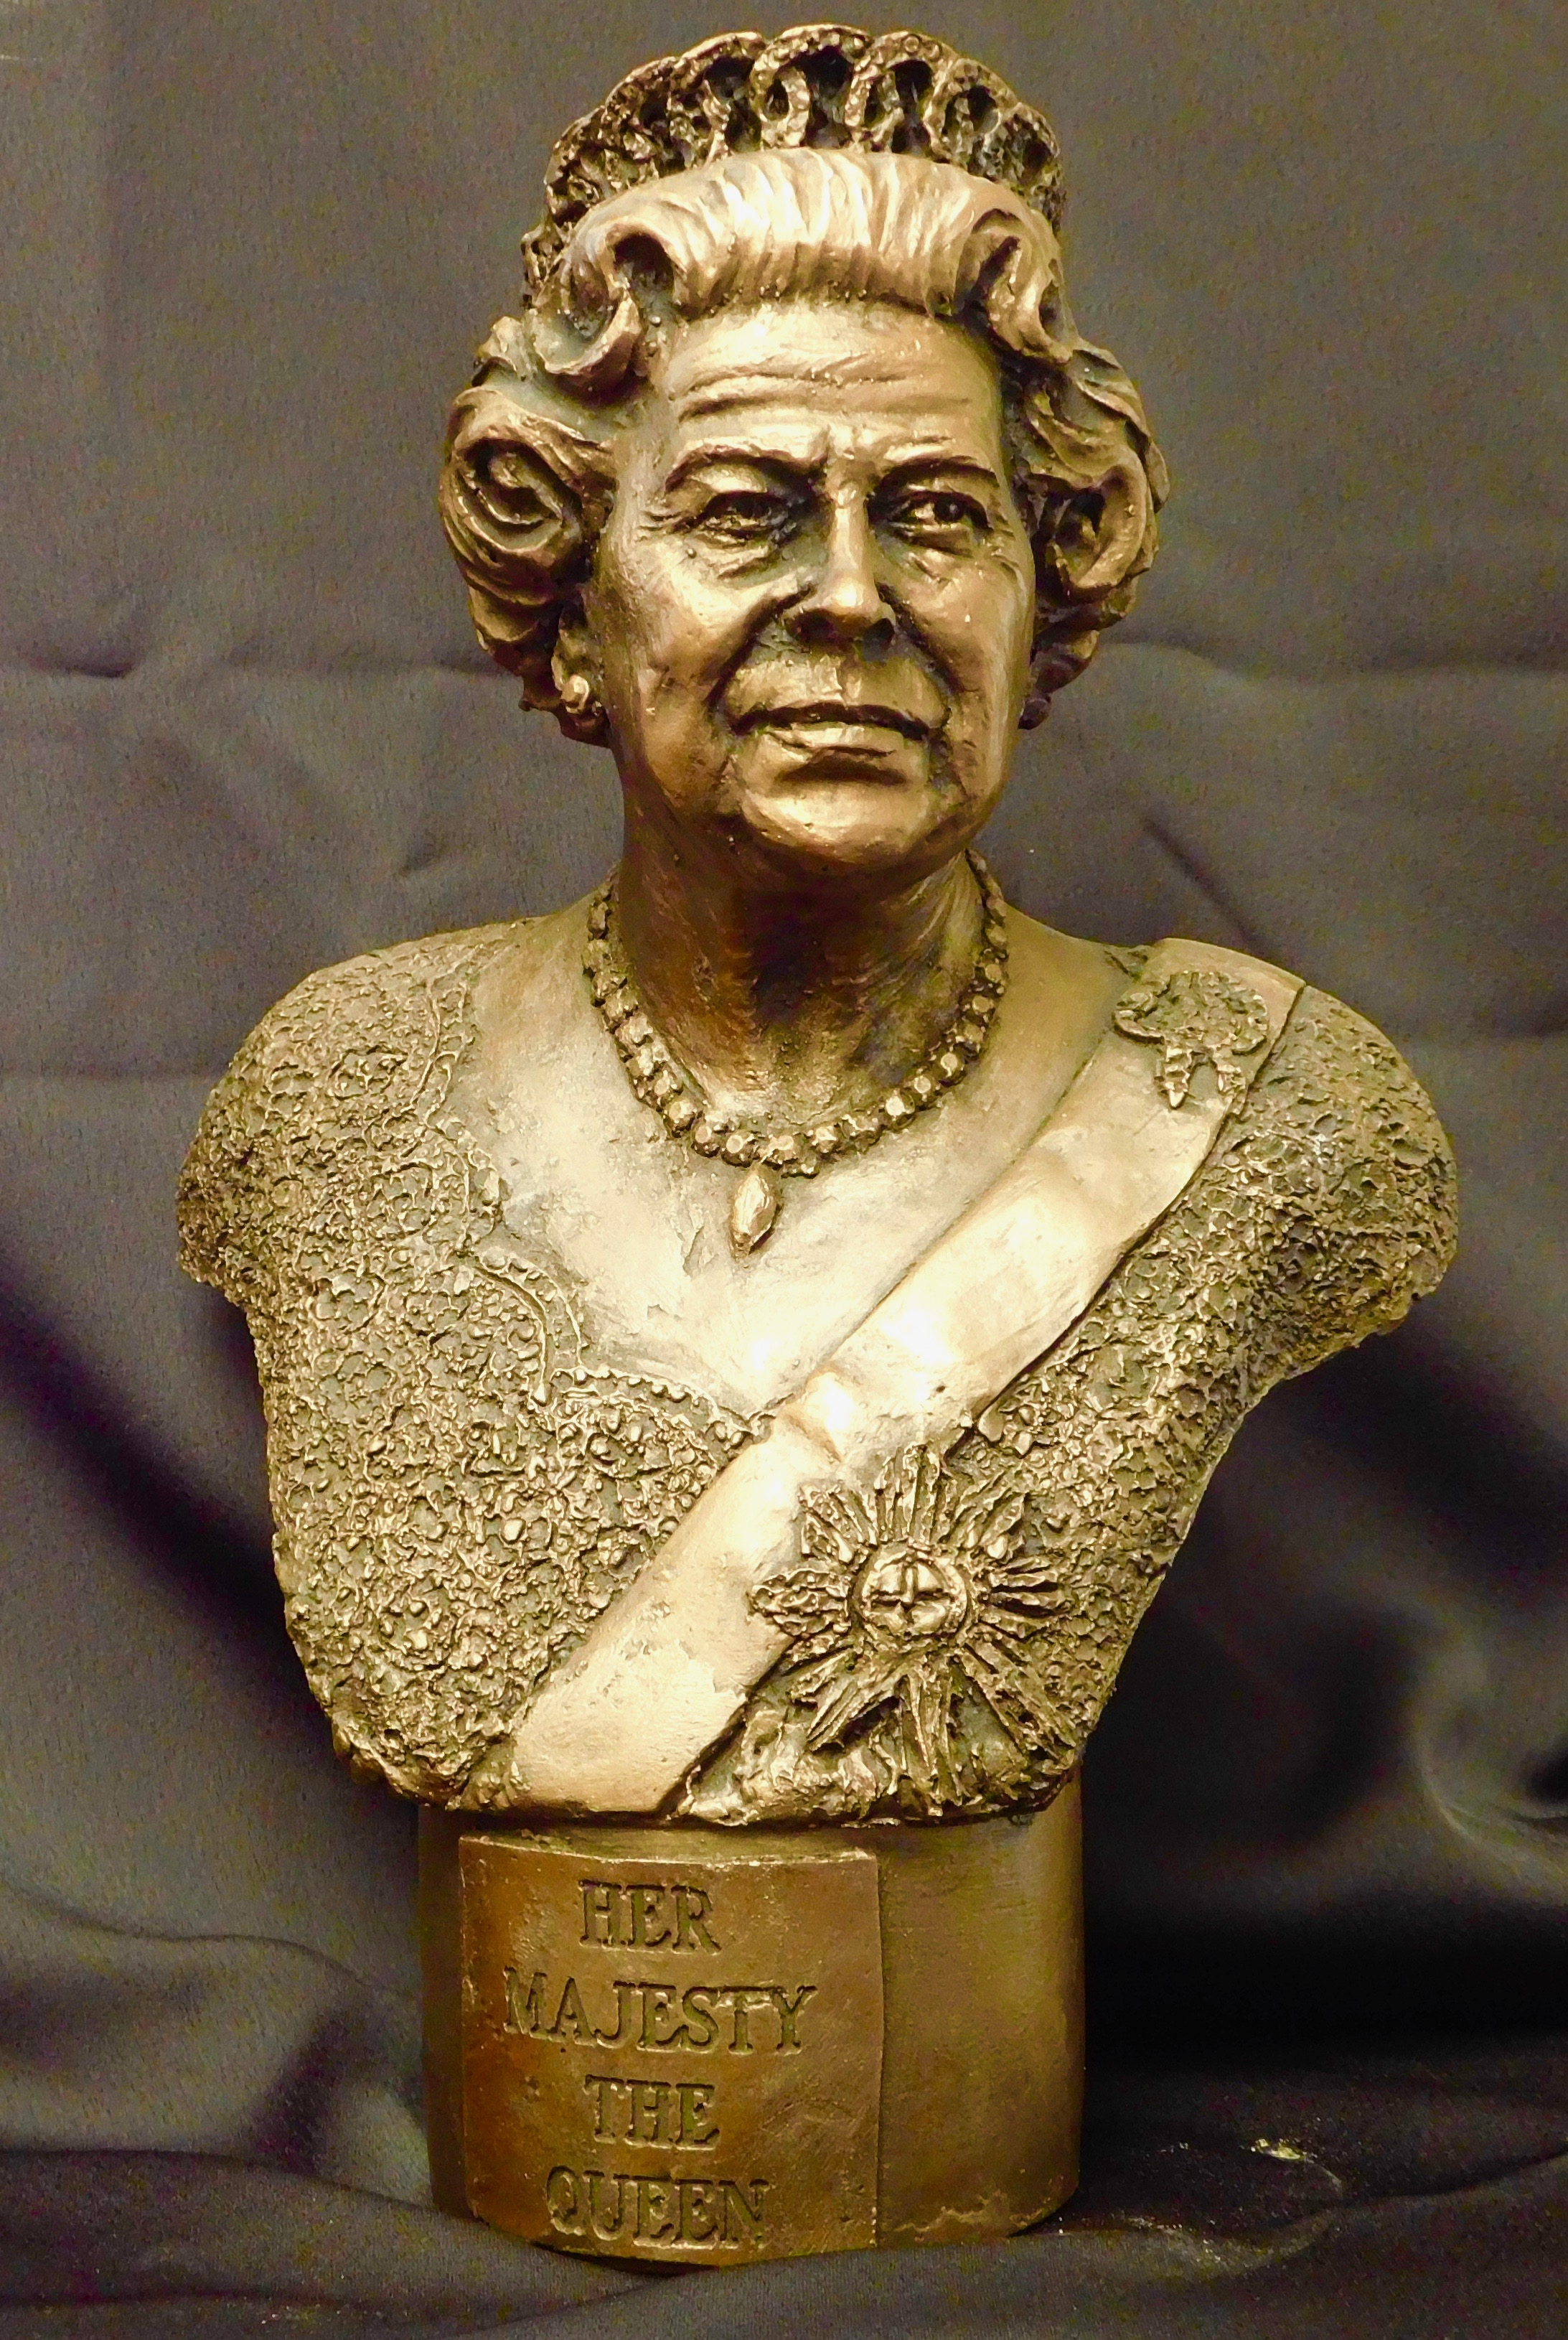 Queen Elizabeth Bronze